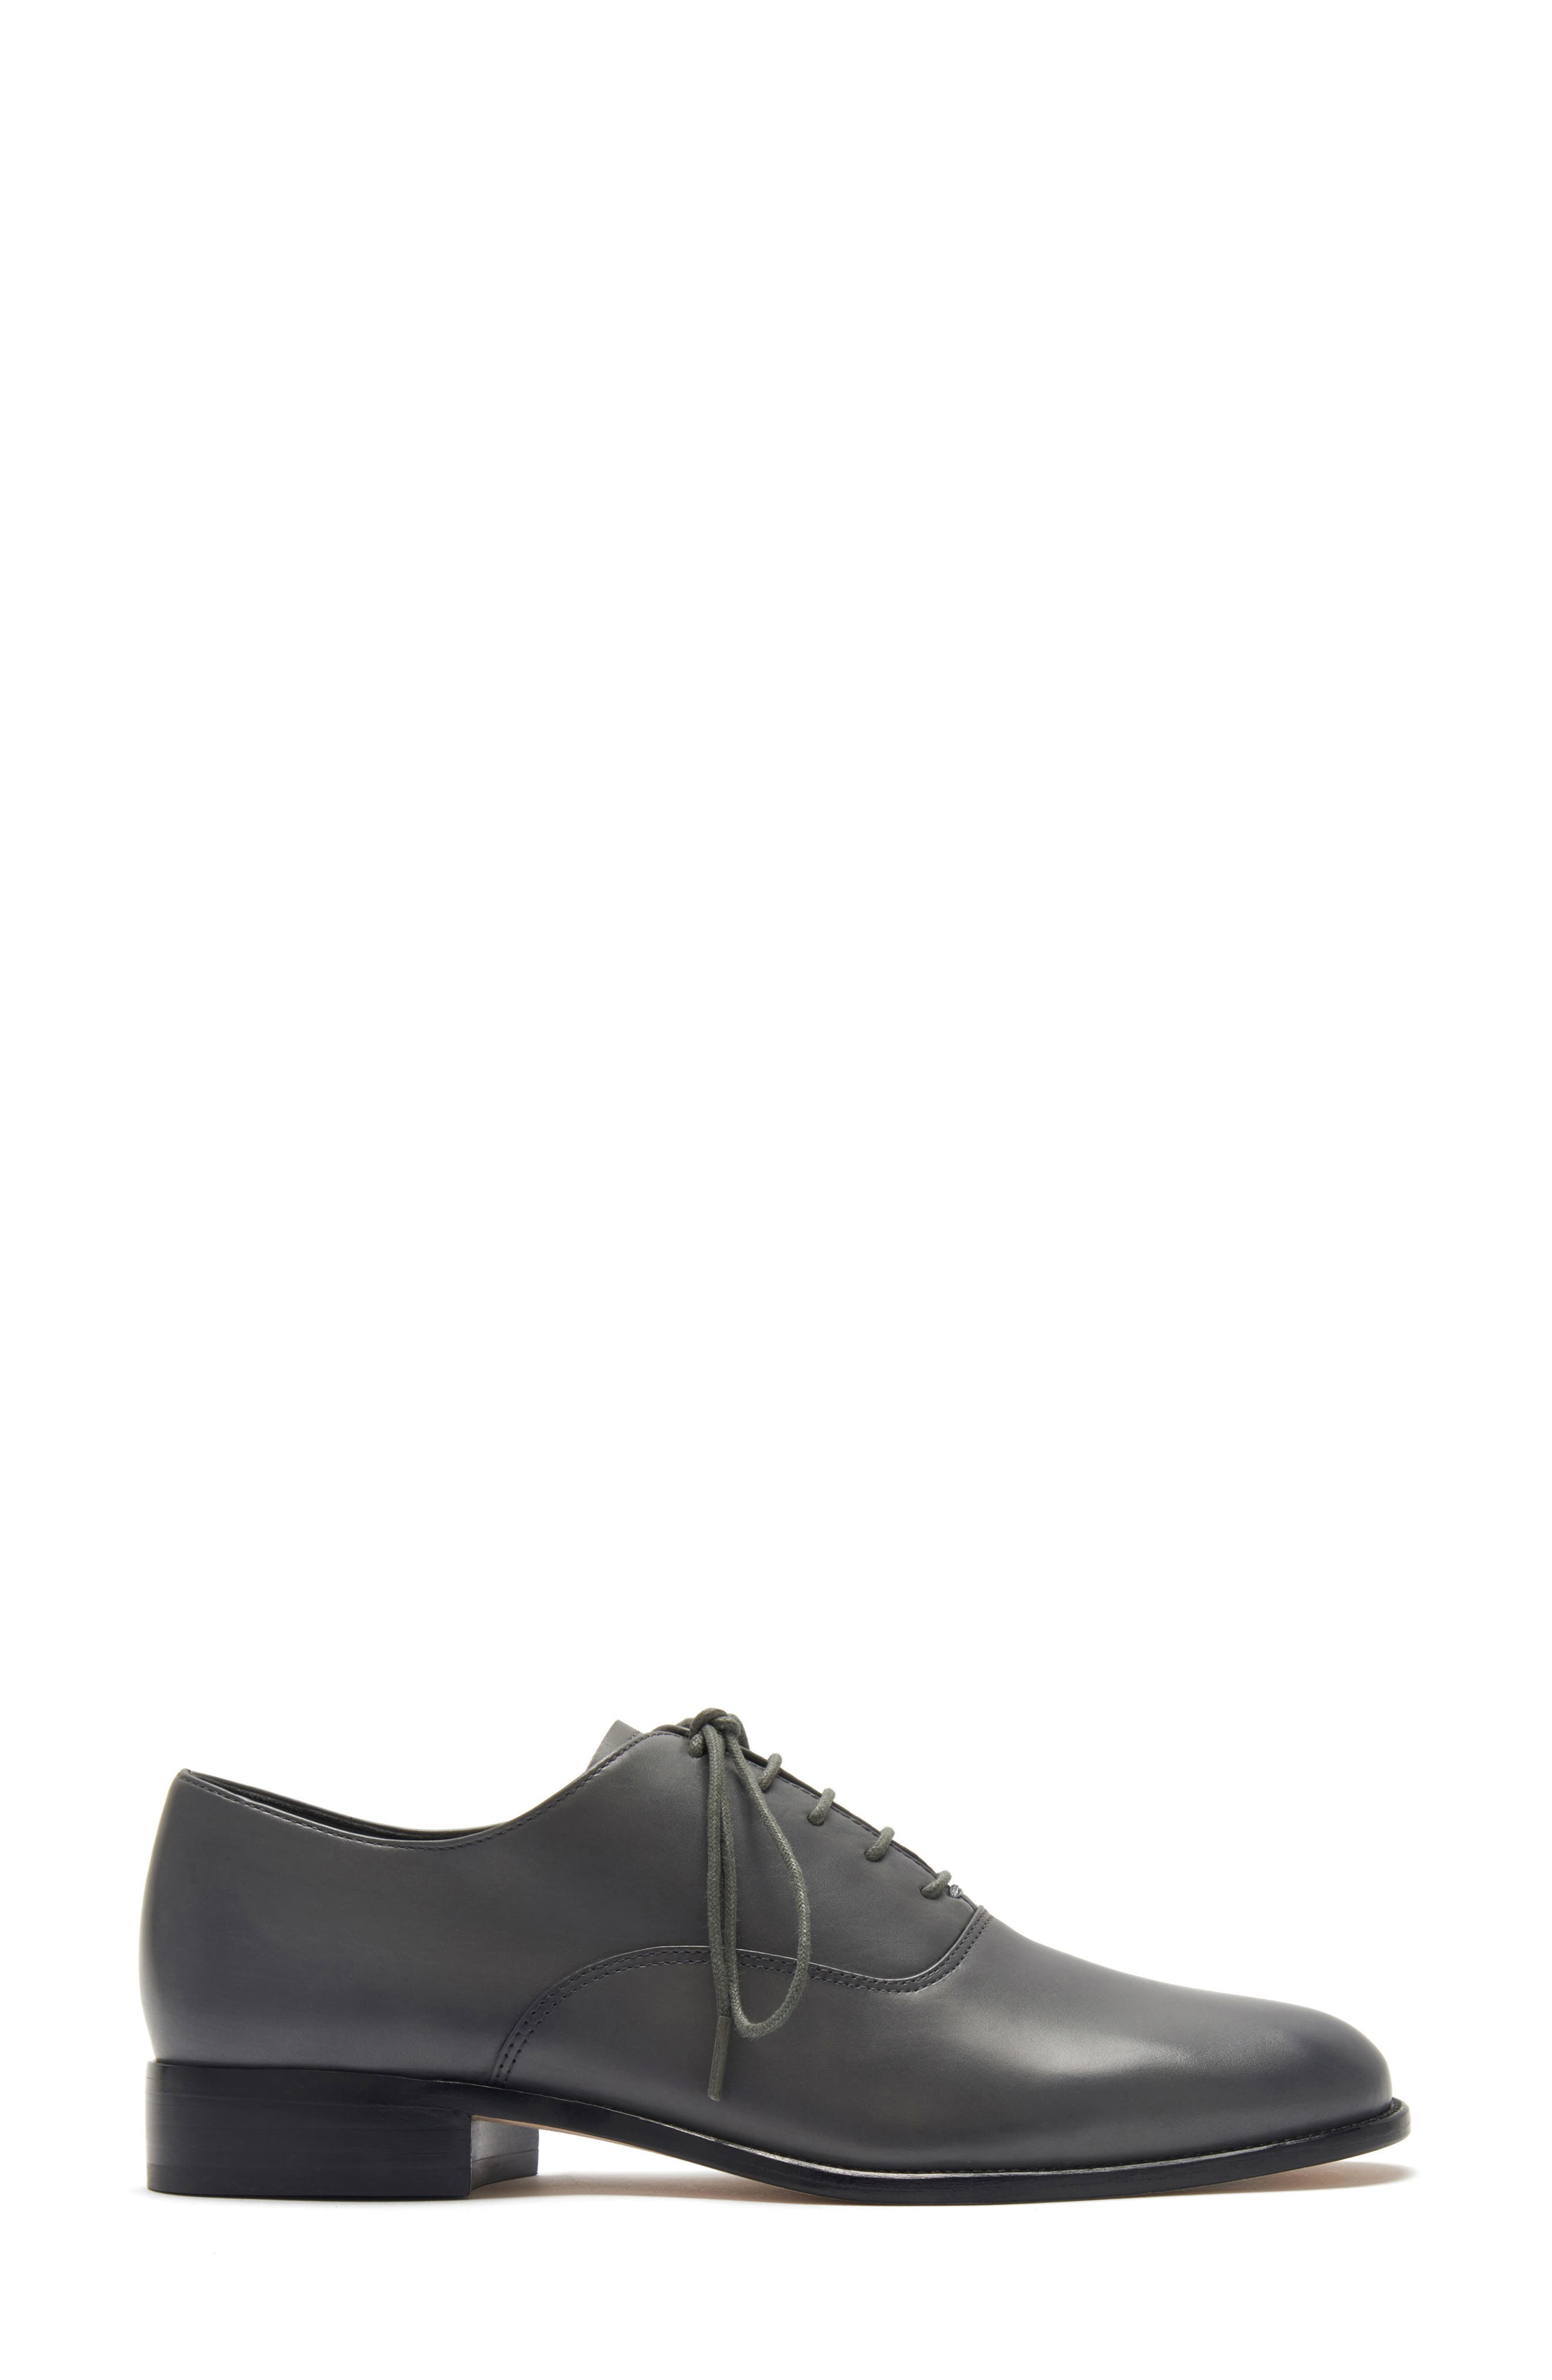 ETIENNE AIGNER, Emery Lace-Up Oxford, Alternate thumbnail 2, color, GRANITE LEATHER